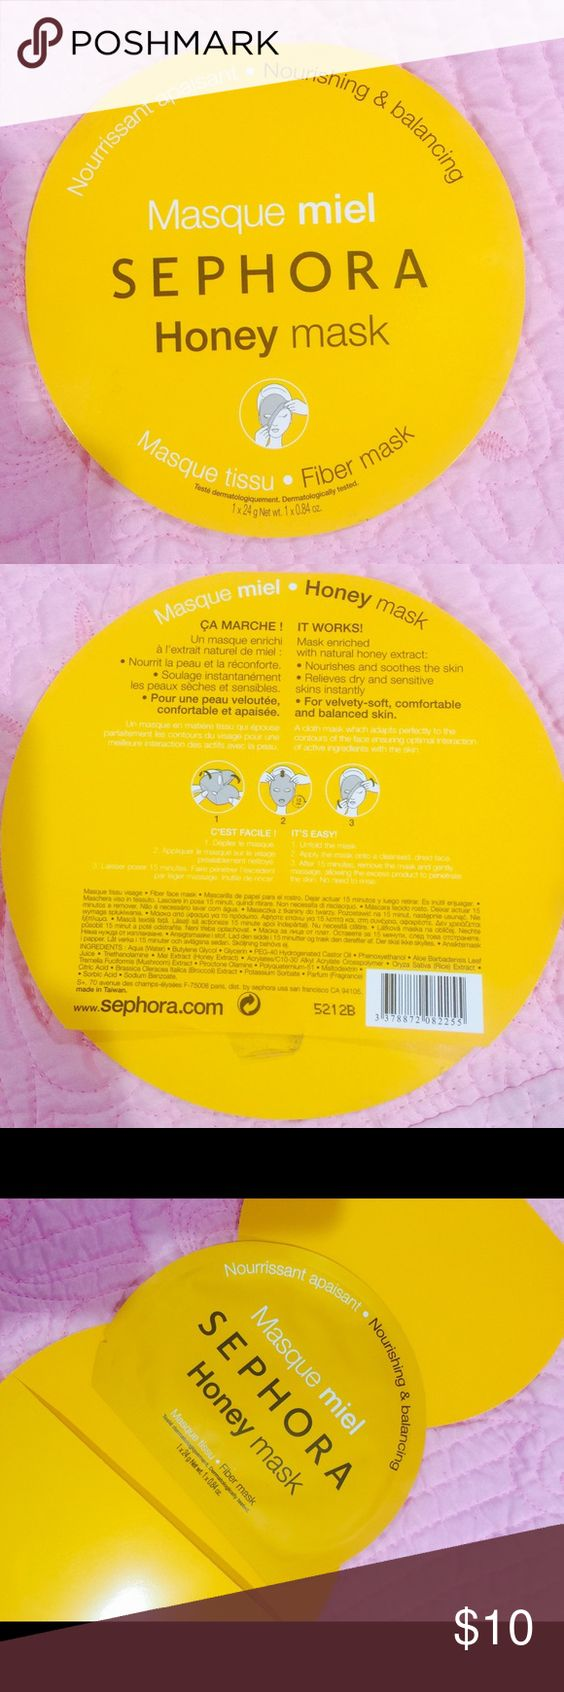 SEPHORA HONEY GIBER MASK Brand new!!! Feels great on skin. Leaves skin looking bright and cleaned. Gentle enough for sensitive skin. Renew refresh Revitalize! Sephora Other